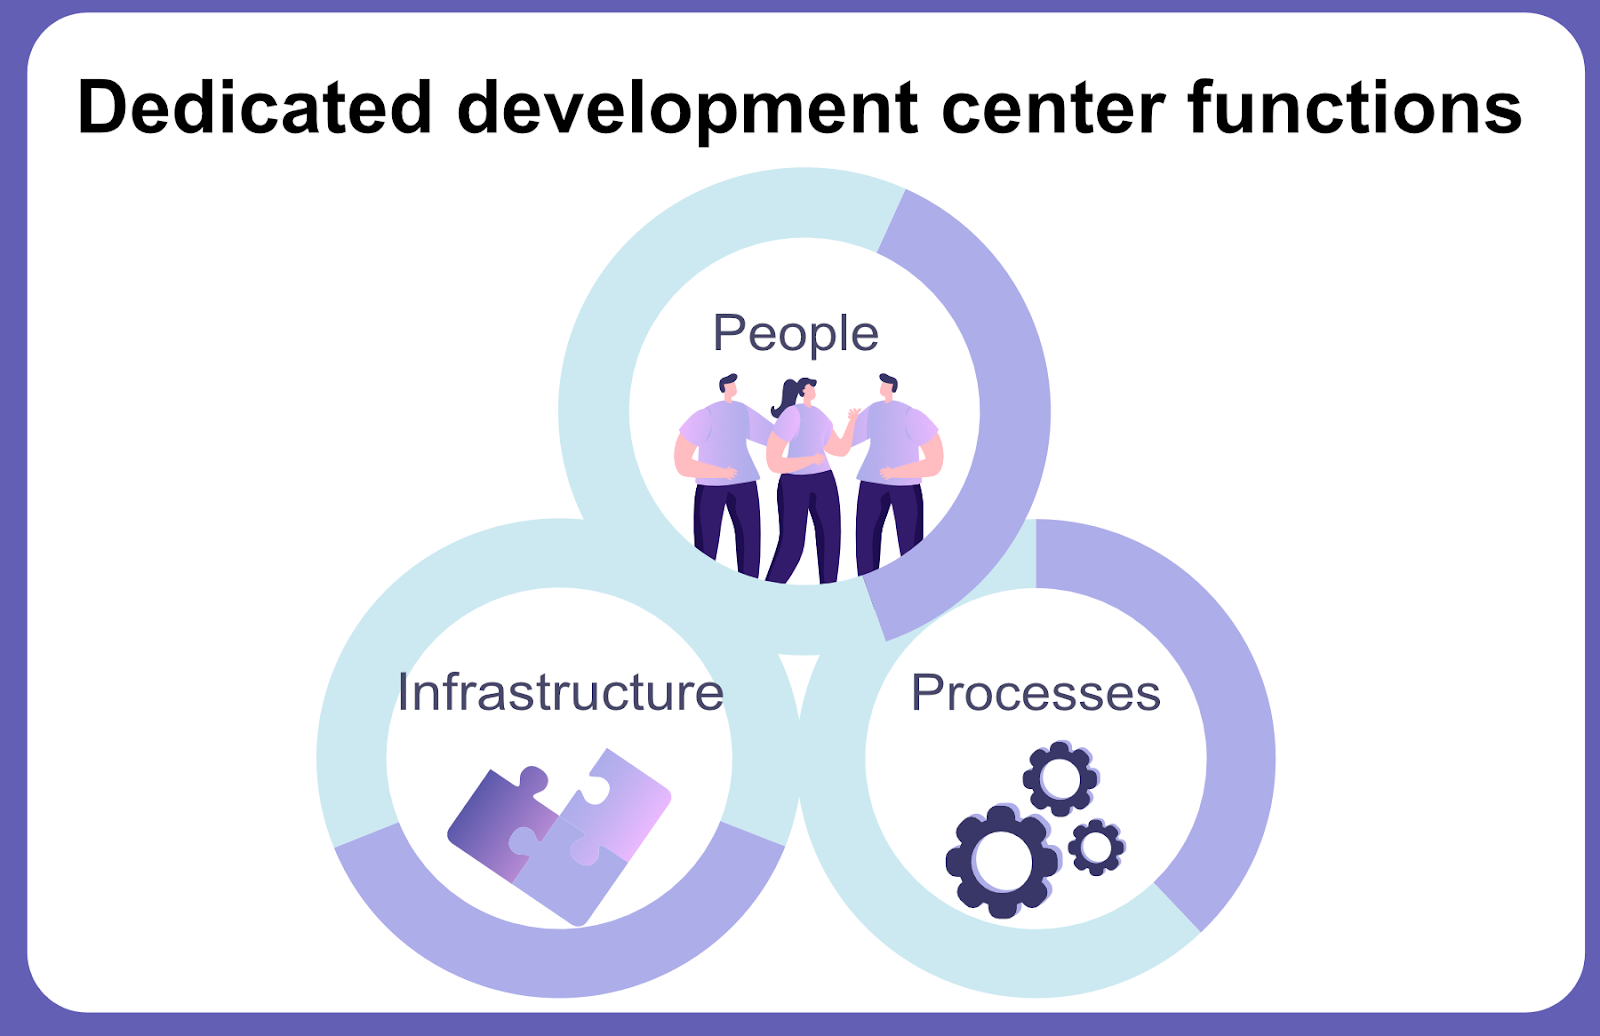 Dedicated development center functions